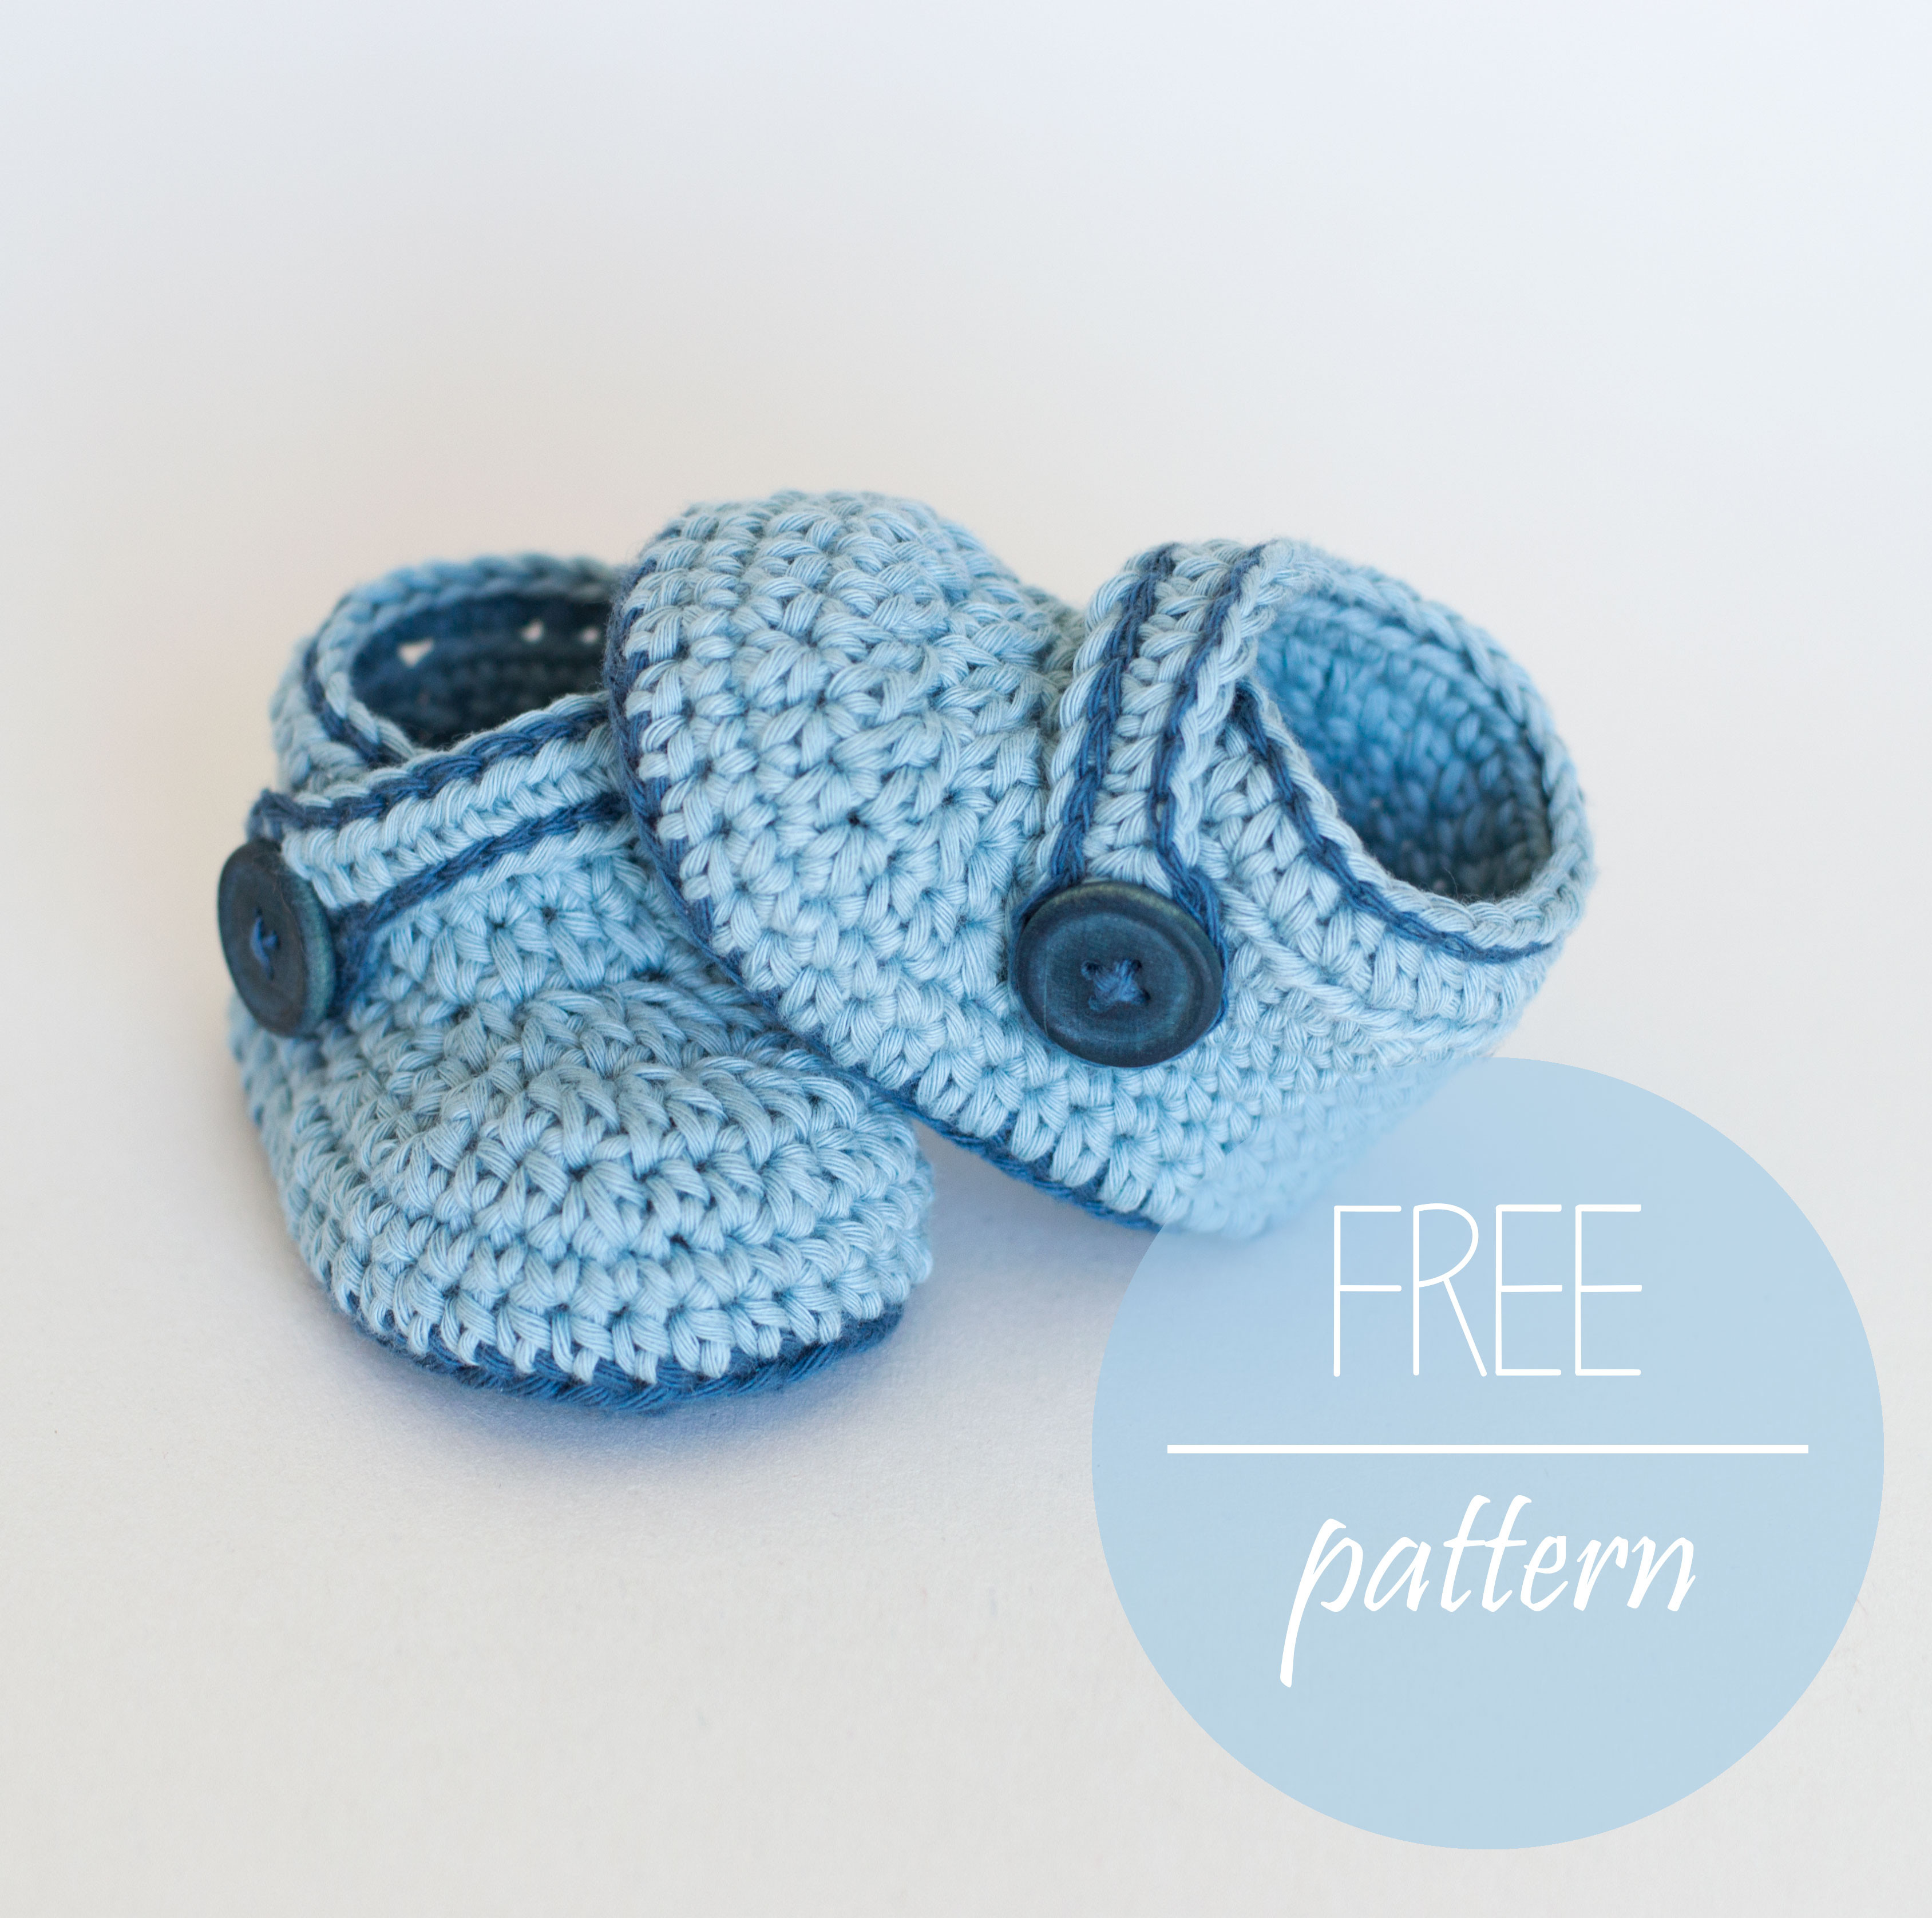 Baby Booties Pattern New Free Crochet Pattern – Blue Whale – Croby Patterns Of Amazing 50 Pics Baby Booties Pattern